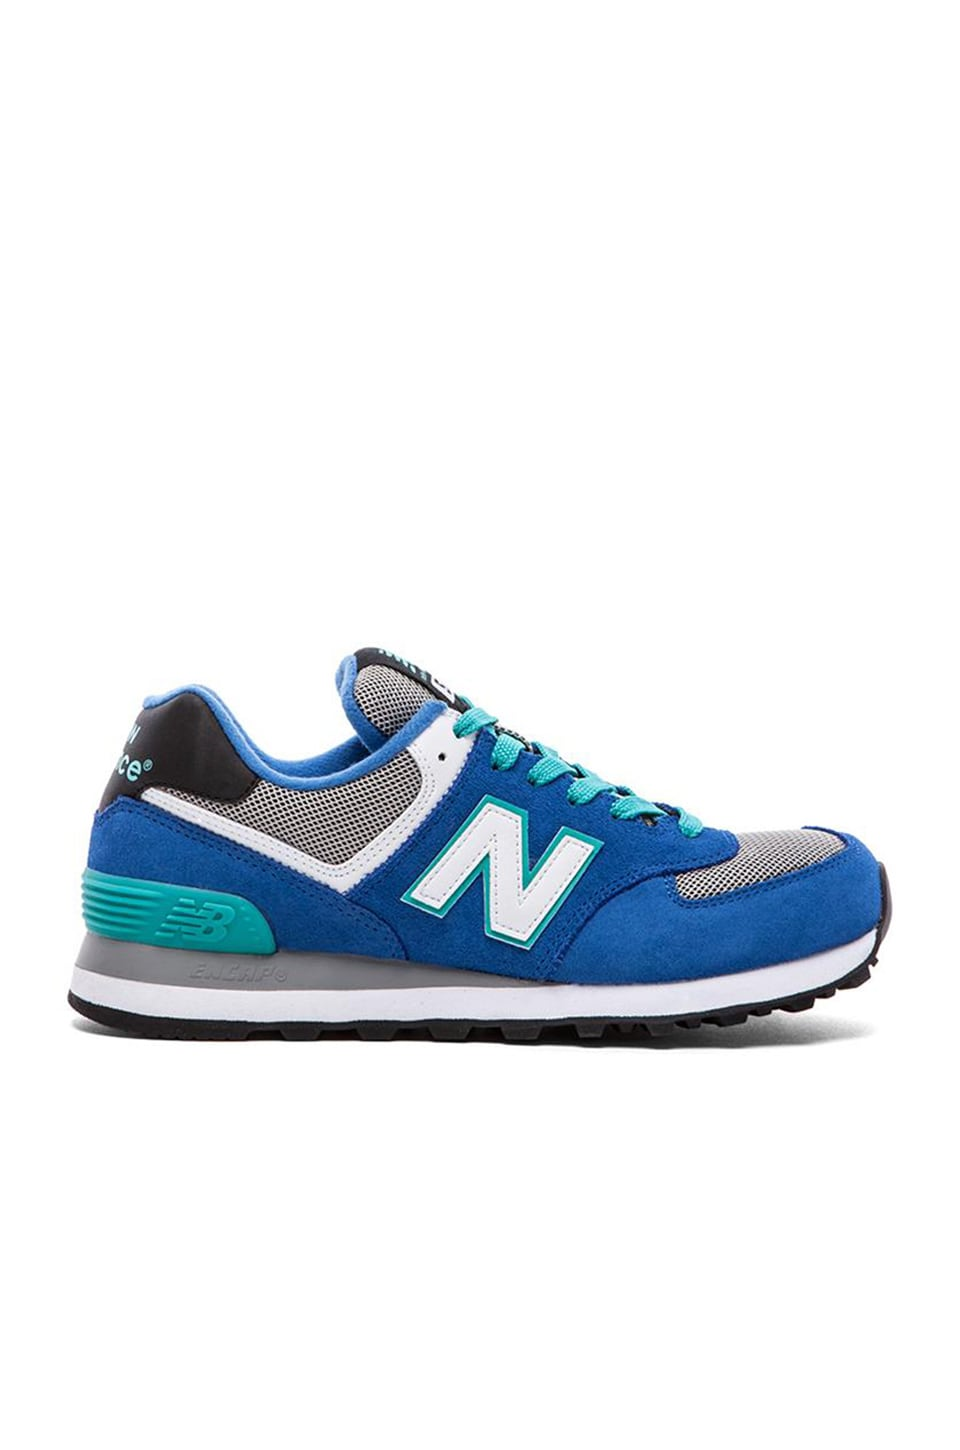 New Balance 574 Core Collection Sneaker in Blue